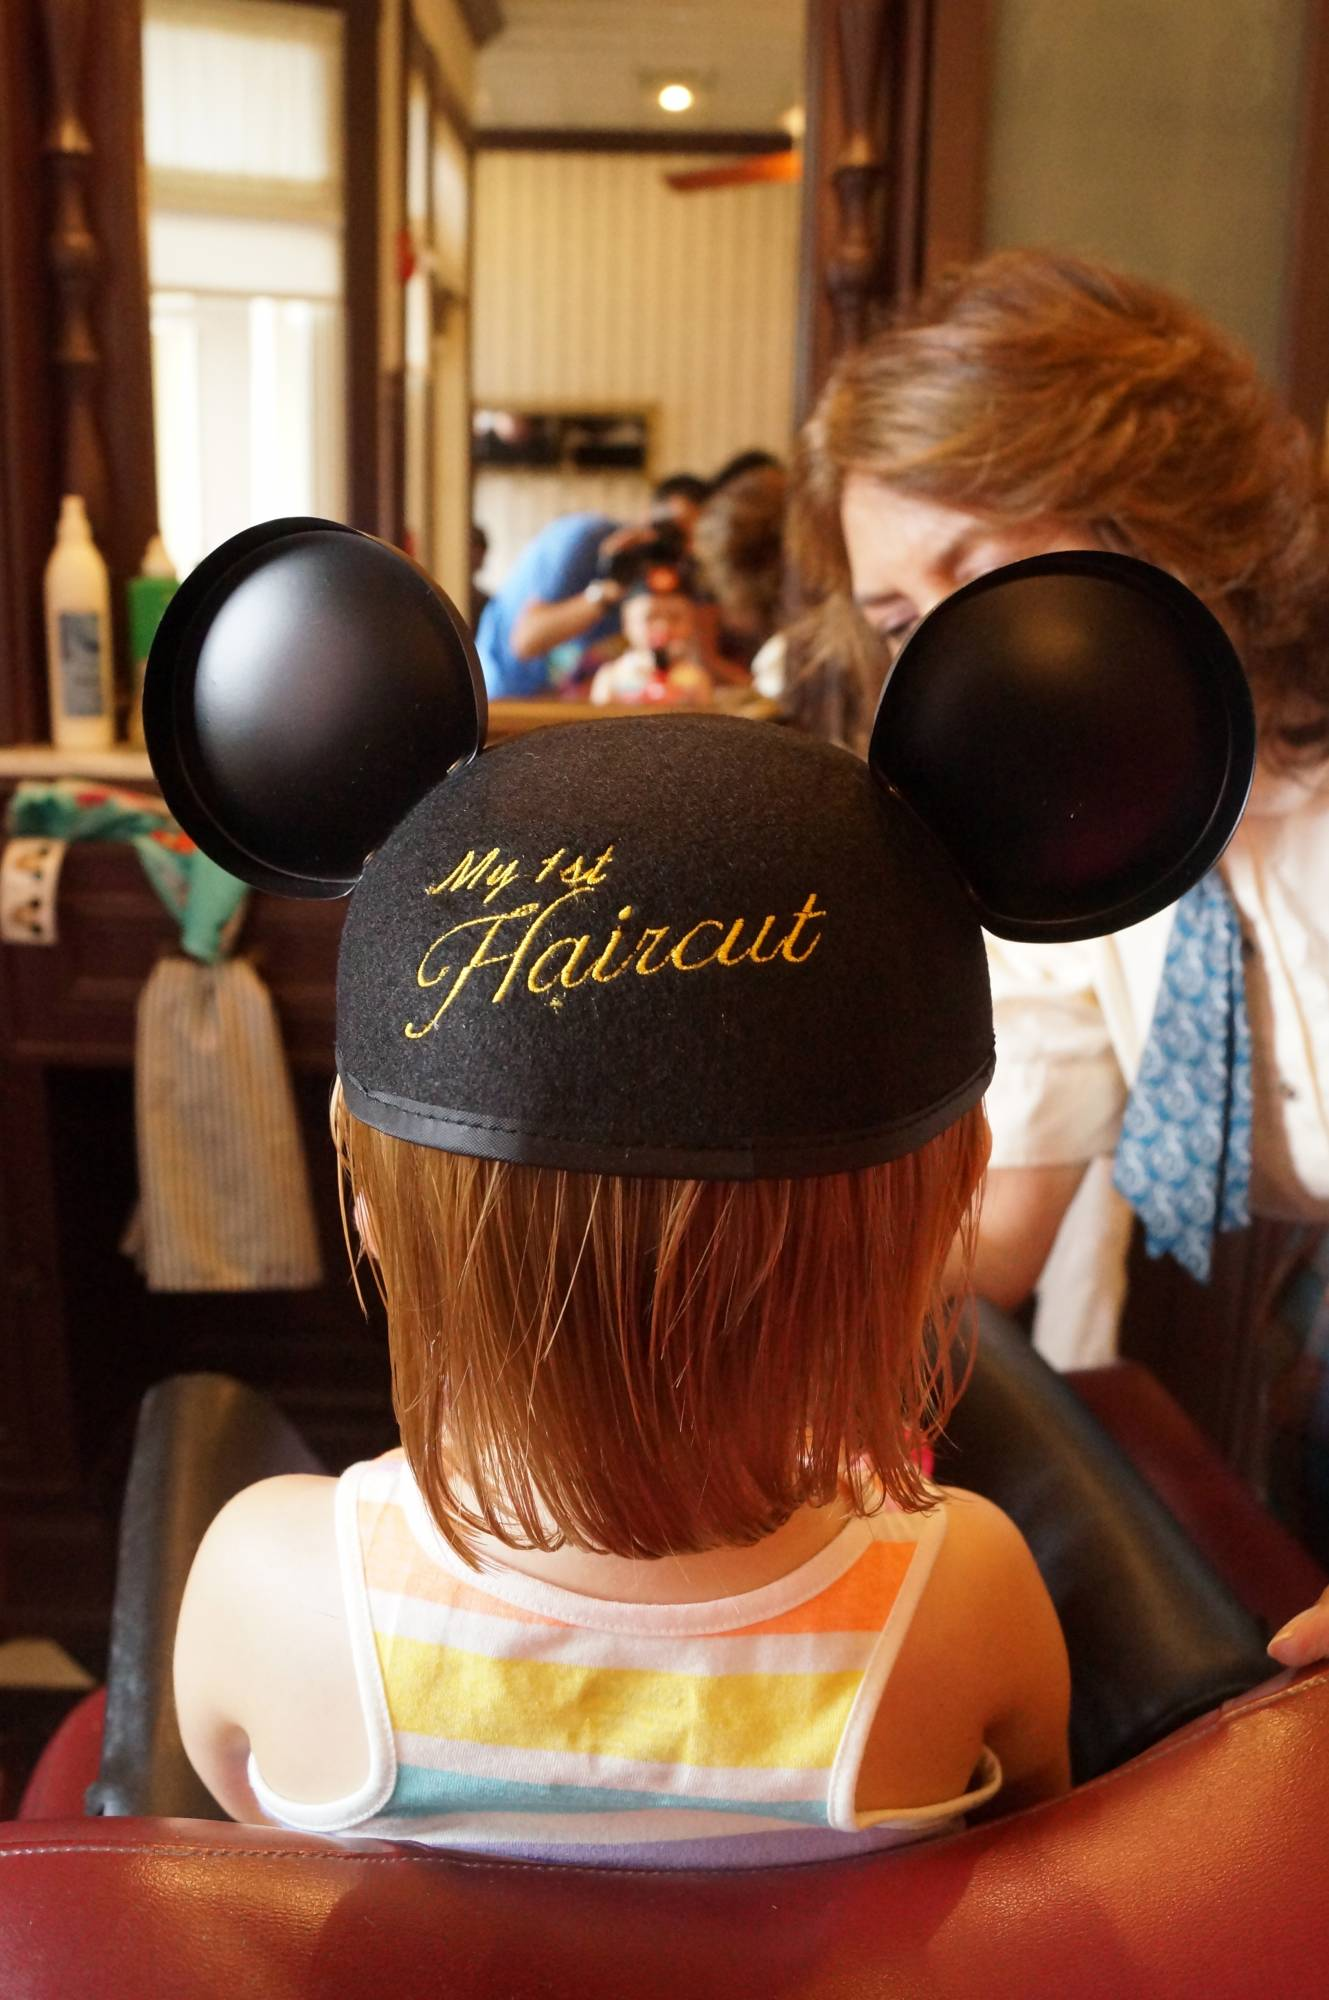 Little ones can get their first haircut at the Harmony Barber Shop in the Magic Kingdom |PassPorter.com